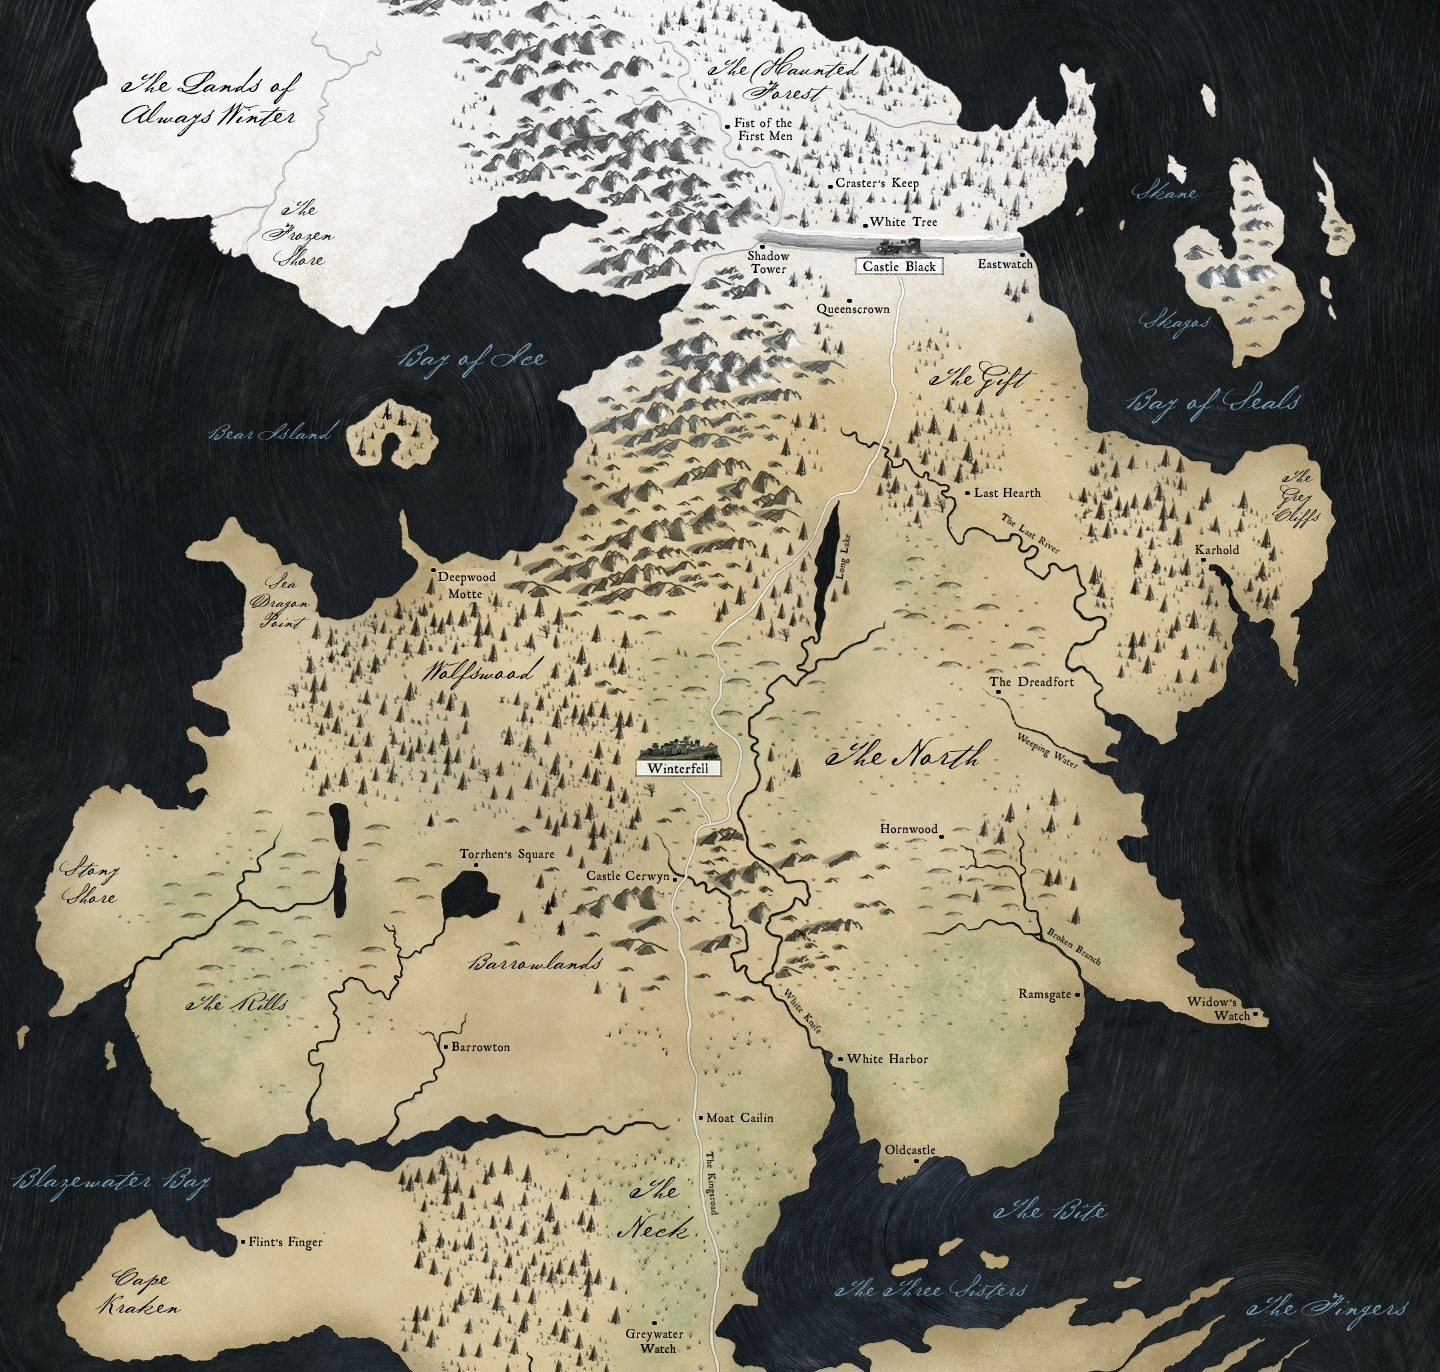 The North | Game of Thrones Wiki | FANDOM powered by Wikia on map of house stark, map of dragons, map of journeys, map of ice and fire, map of alagaesia, map of narnia, map of the lands beyond, map of federal district mexico city in, map of the undying lands, map recreated game of thrones, map of oz, map of prydain,